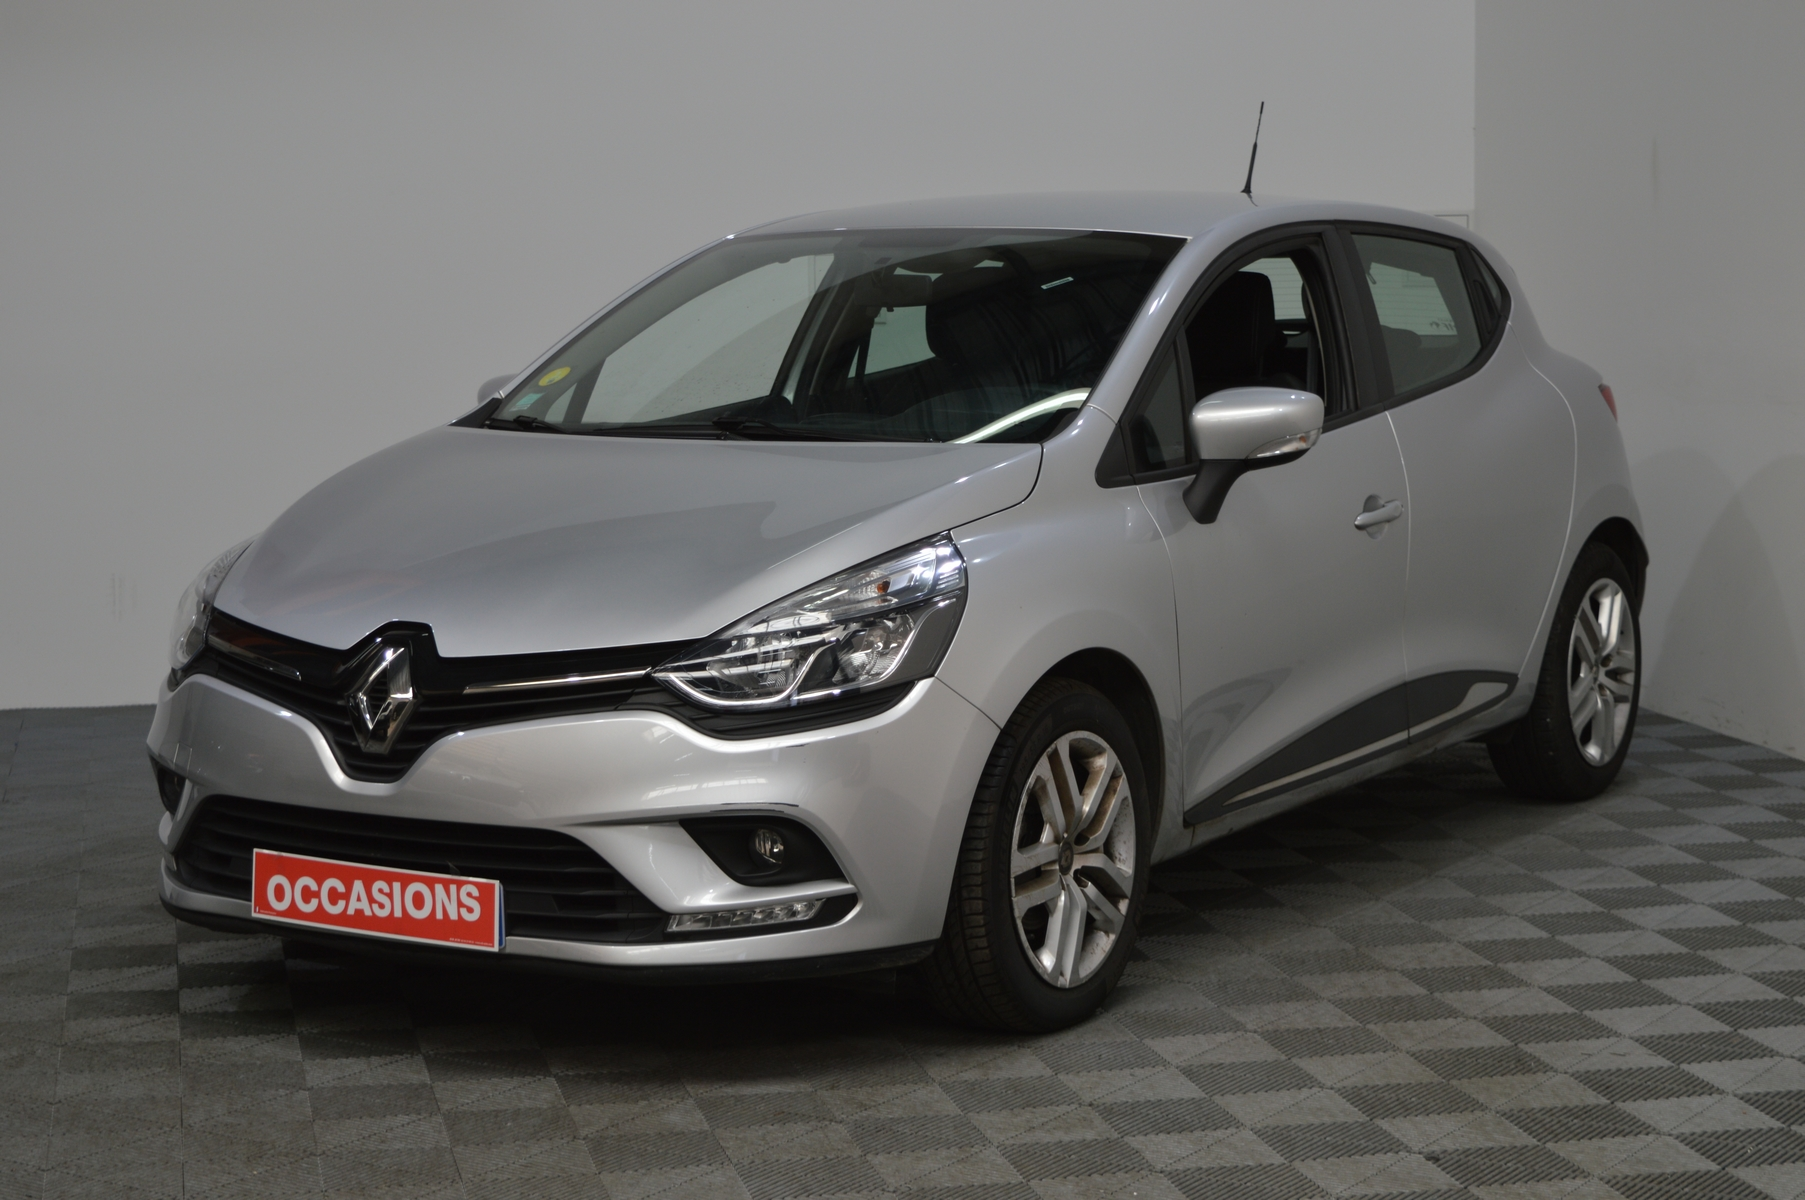 RENAULT CLIO IV Business dCi 75 d'occasion